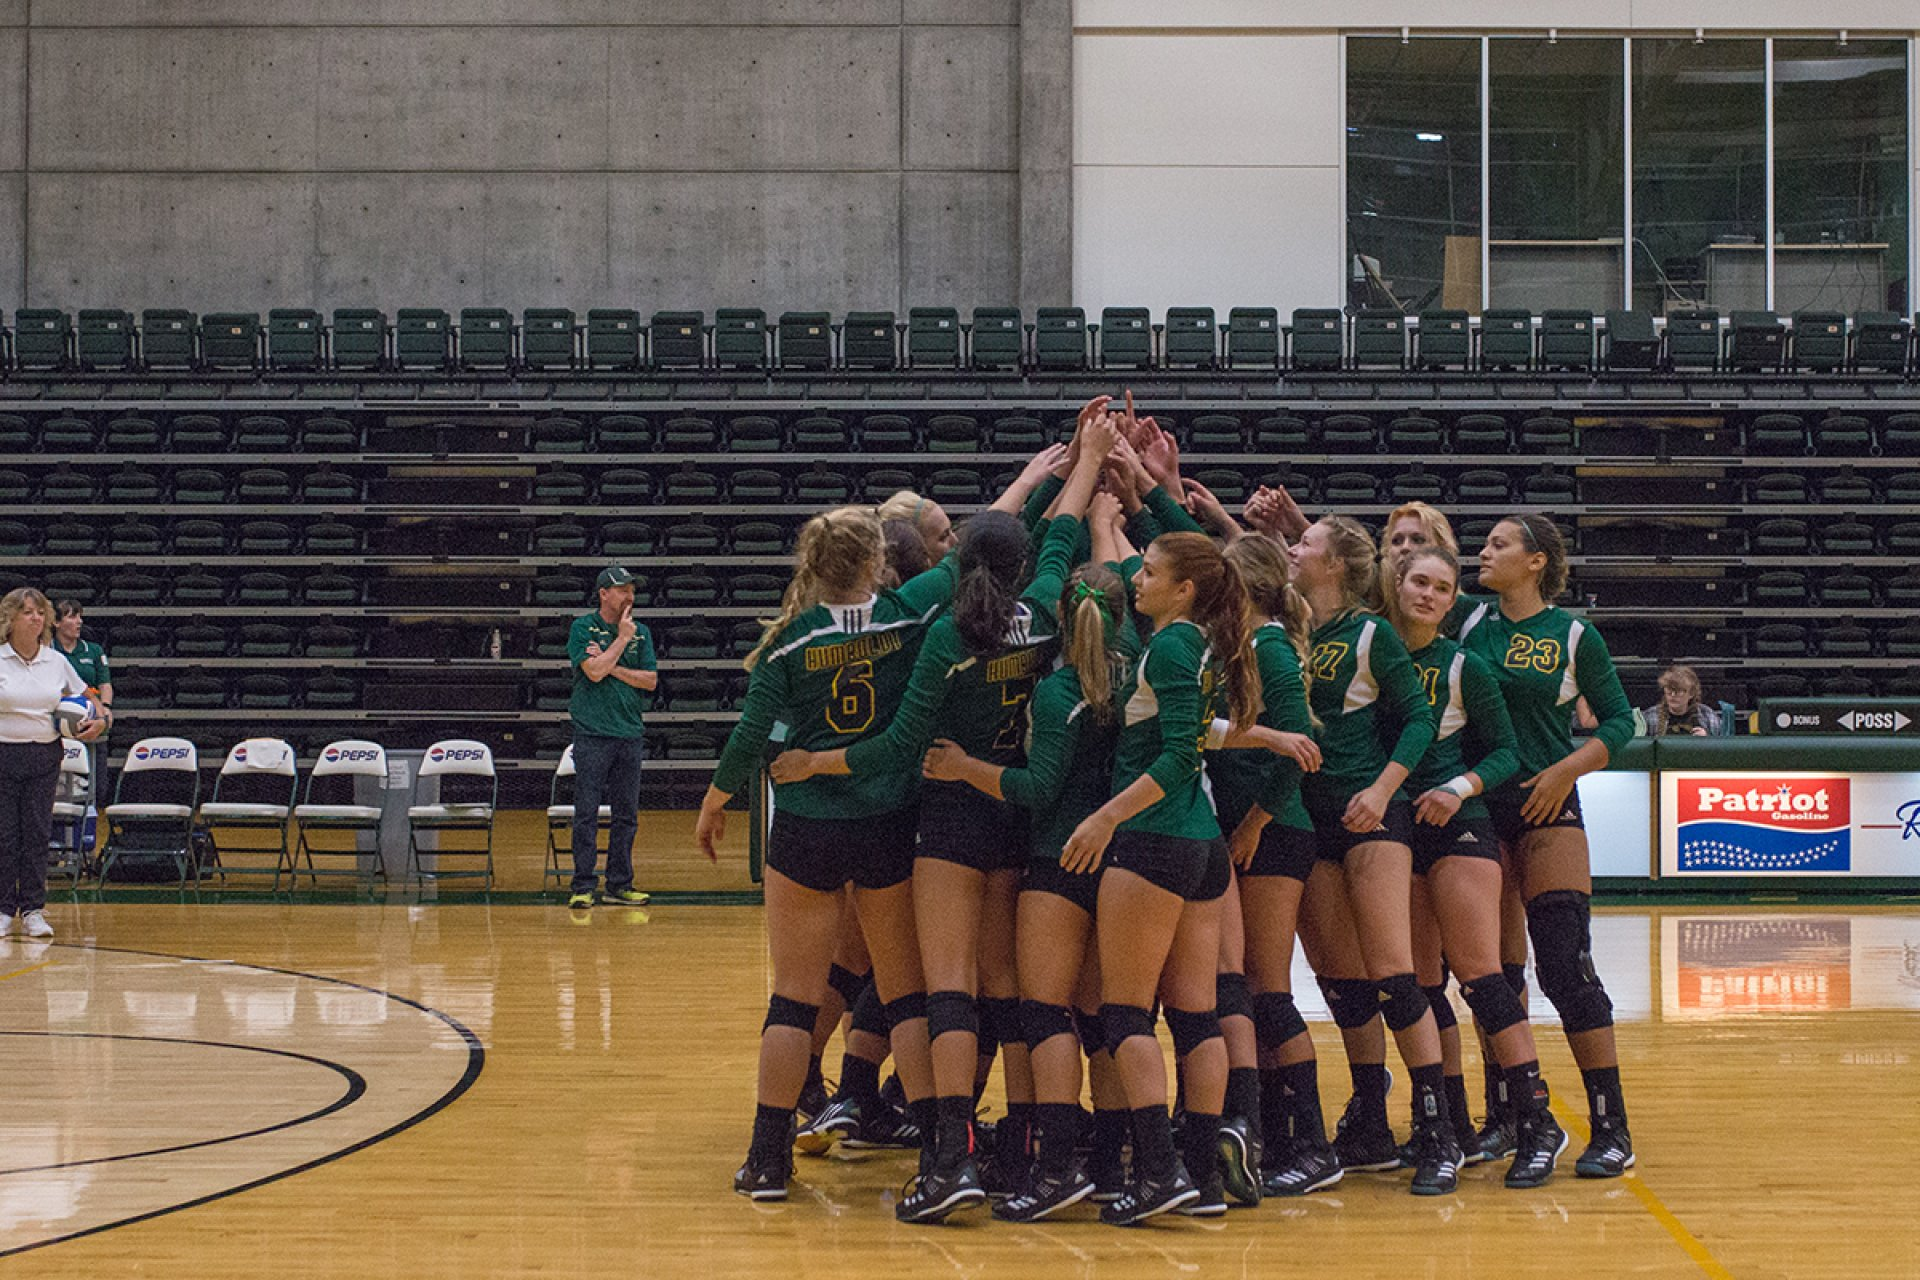 HSU Volleyball team huddles together in the Lumberjack Arena for the first game of the season against Academy of Art in the HSU Lumberjacks Arena on Thursday, August 31st. | Photo by Lauren Shea